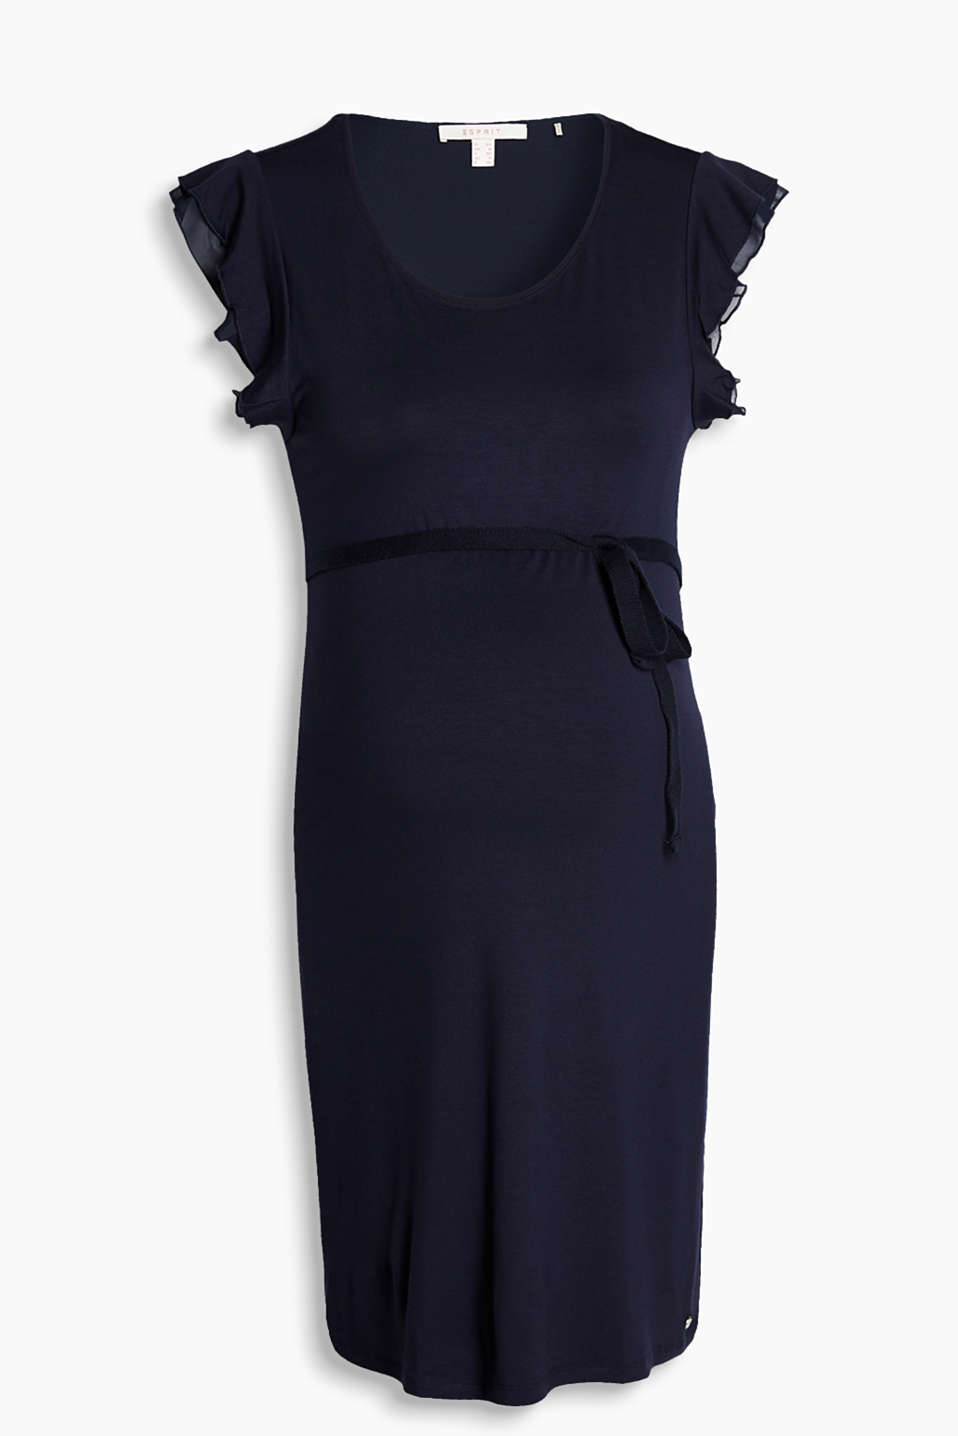 Feminine stretch jersey dress with layered, frilled chiffon sleeves